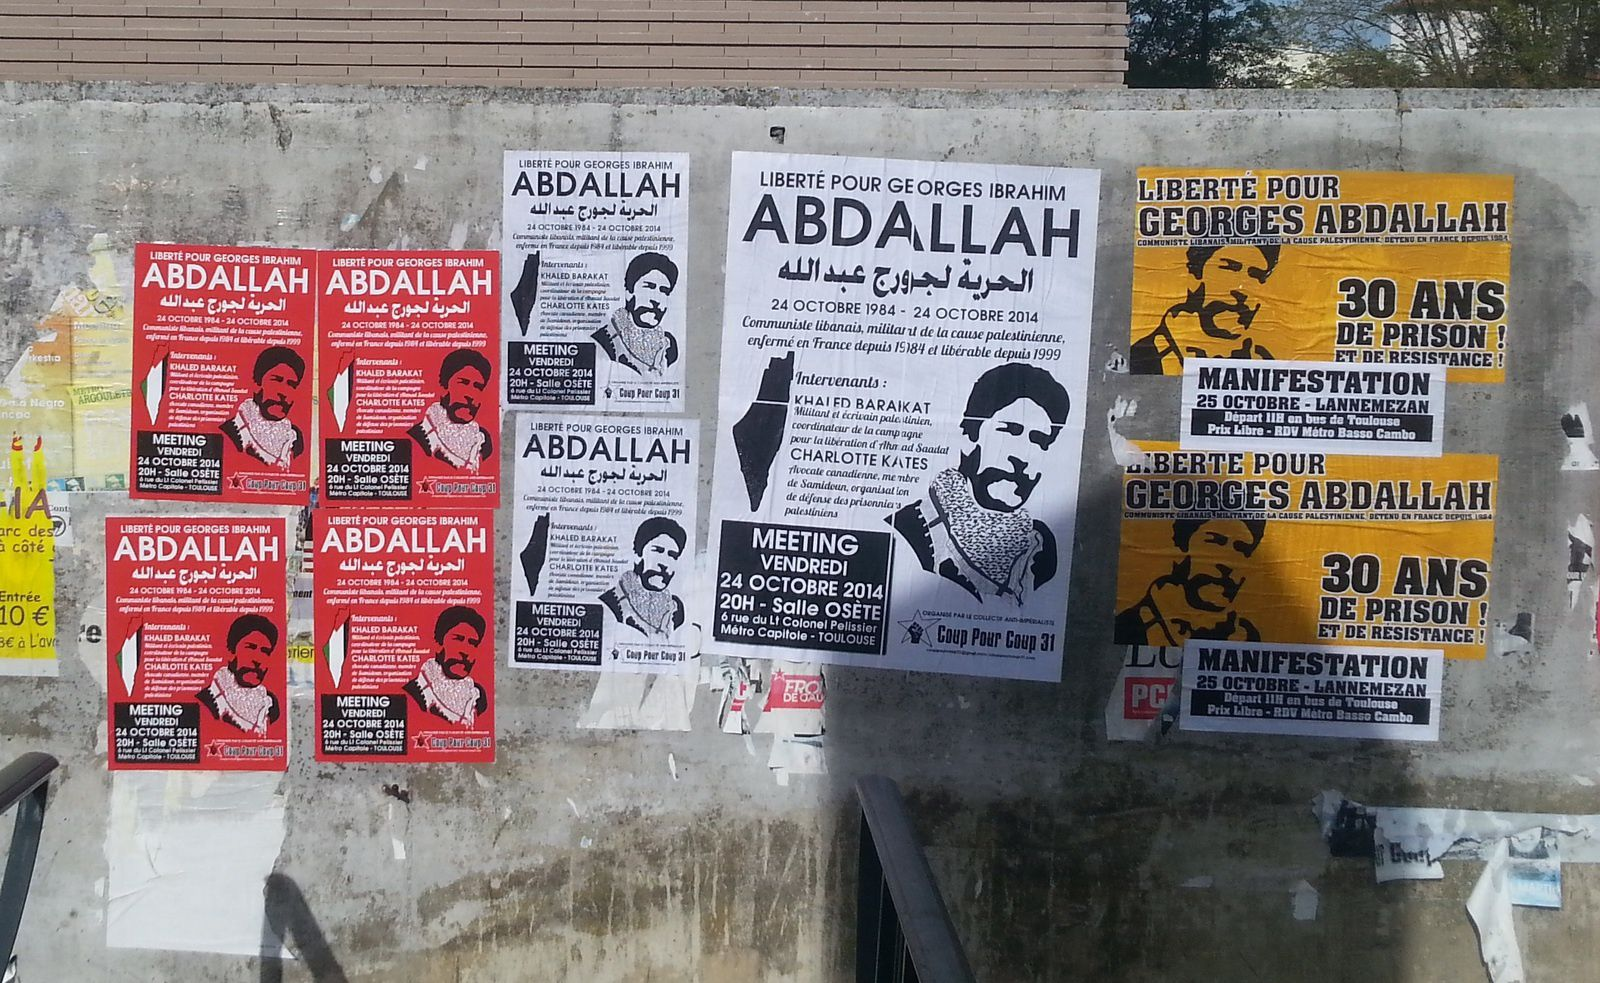 Ensemble, faisons sortir Georges Abdallah !